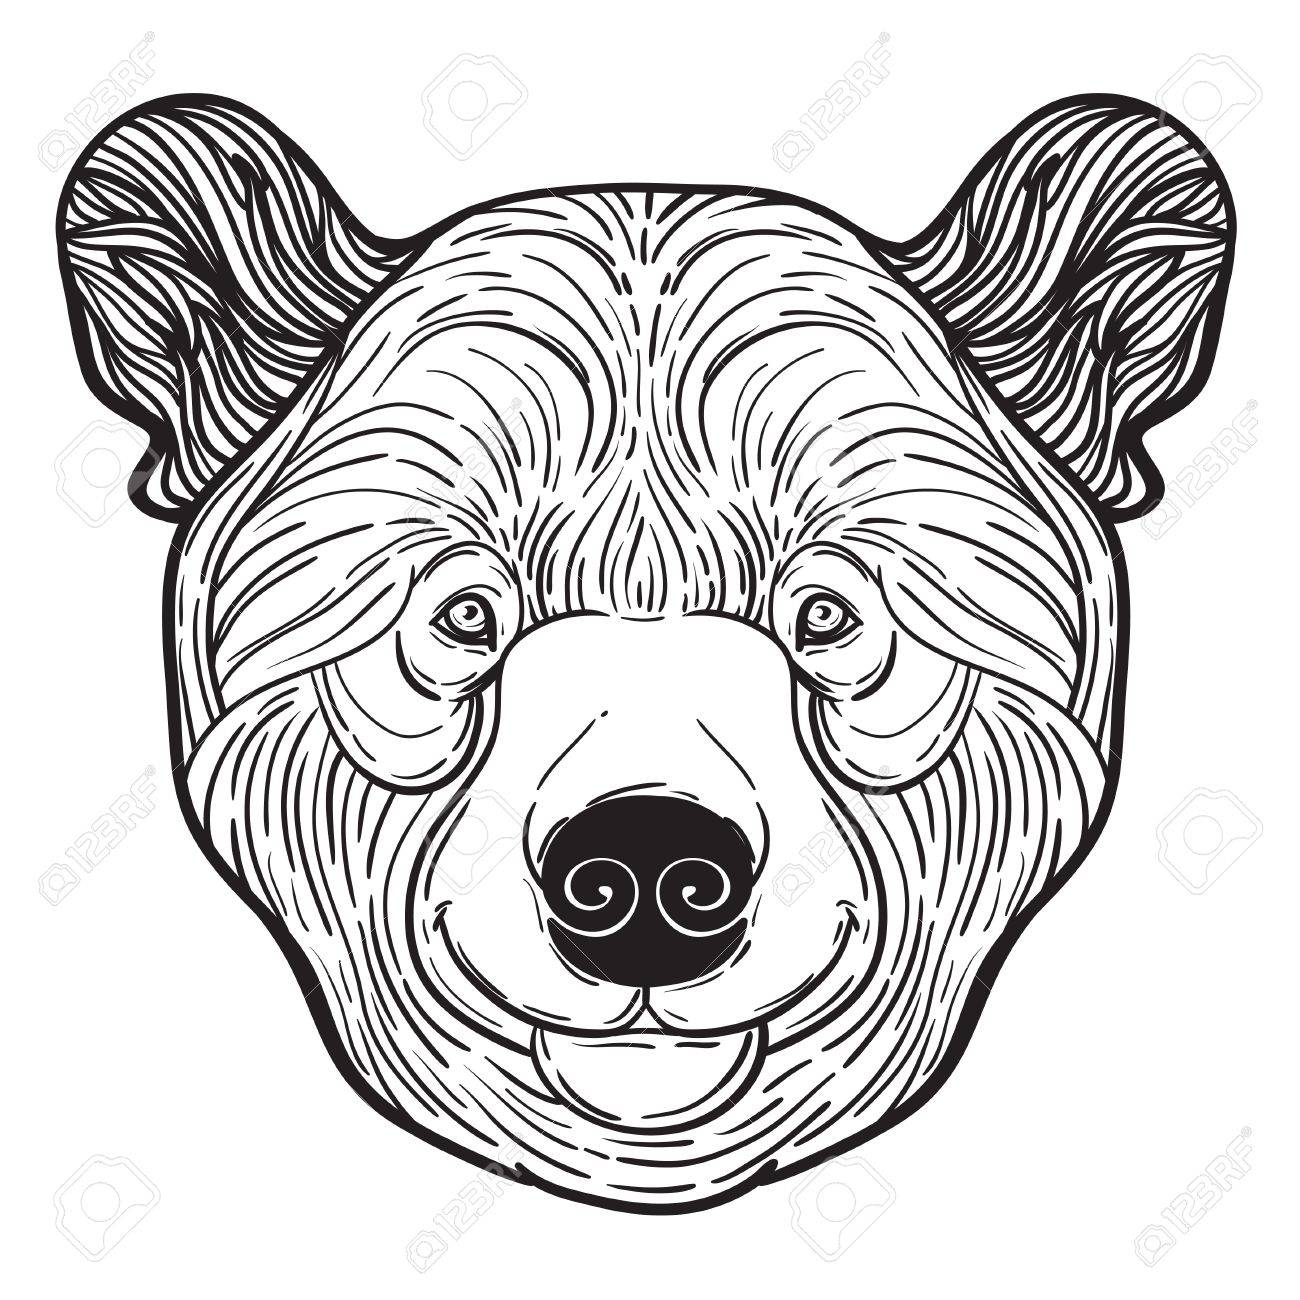 Animal Teddy Bear Head Print For Adult Anti Stress Coloring Page Ethnic Patterned Ornate Hand